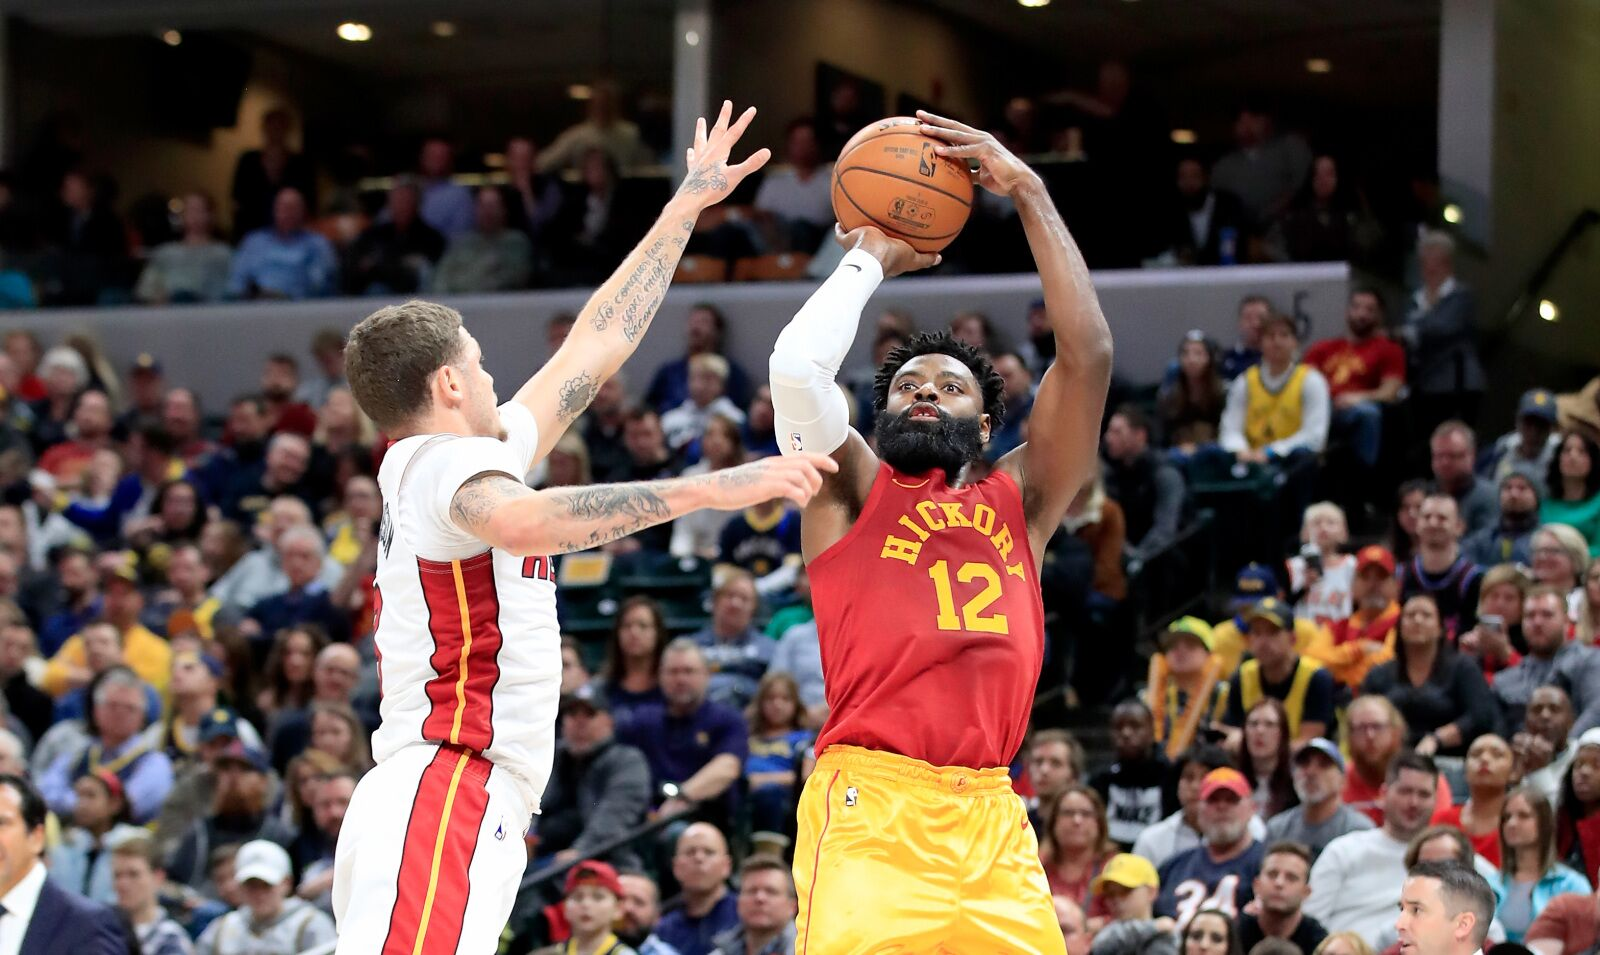 The career and disappointing downfall of Tyreke Evans